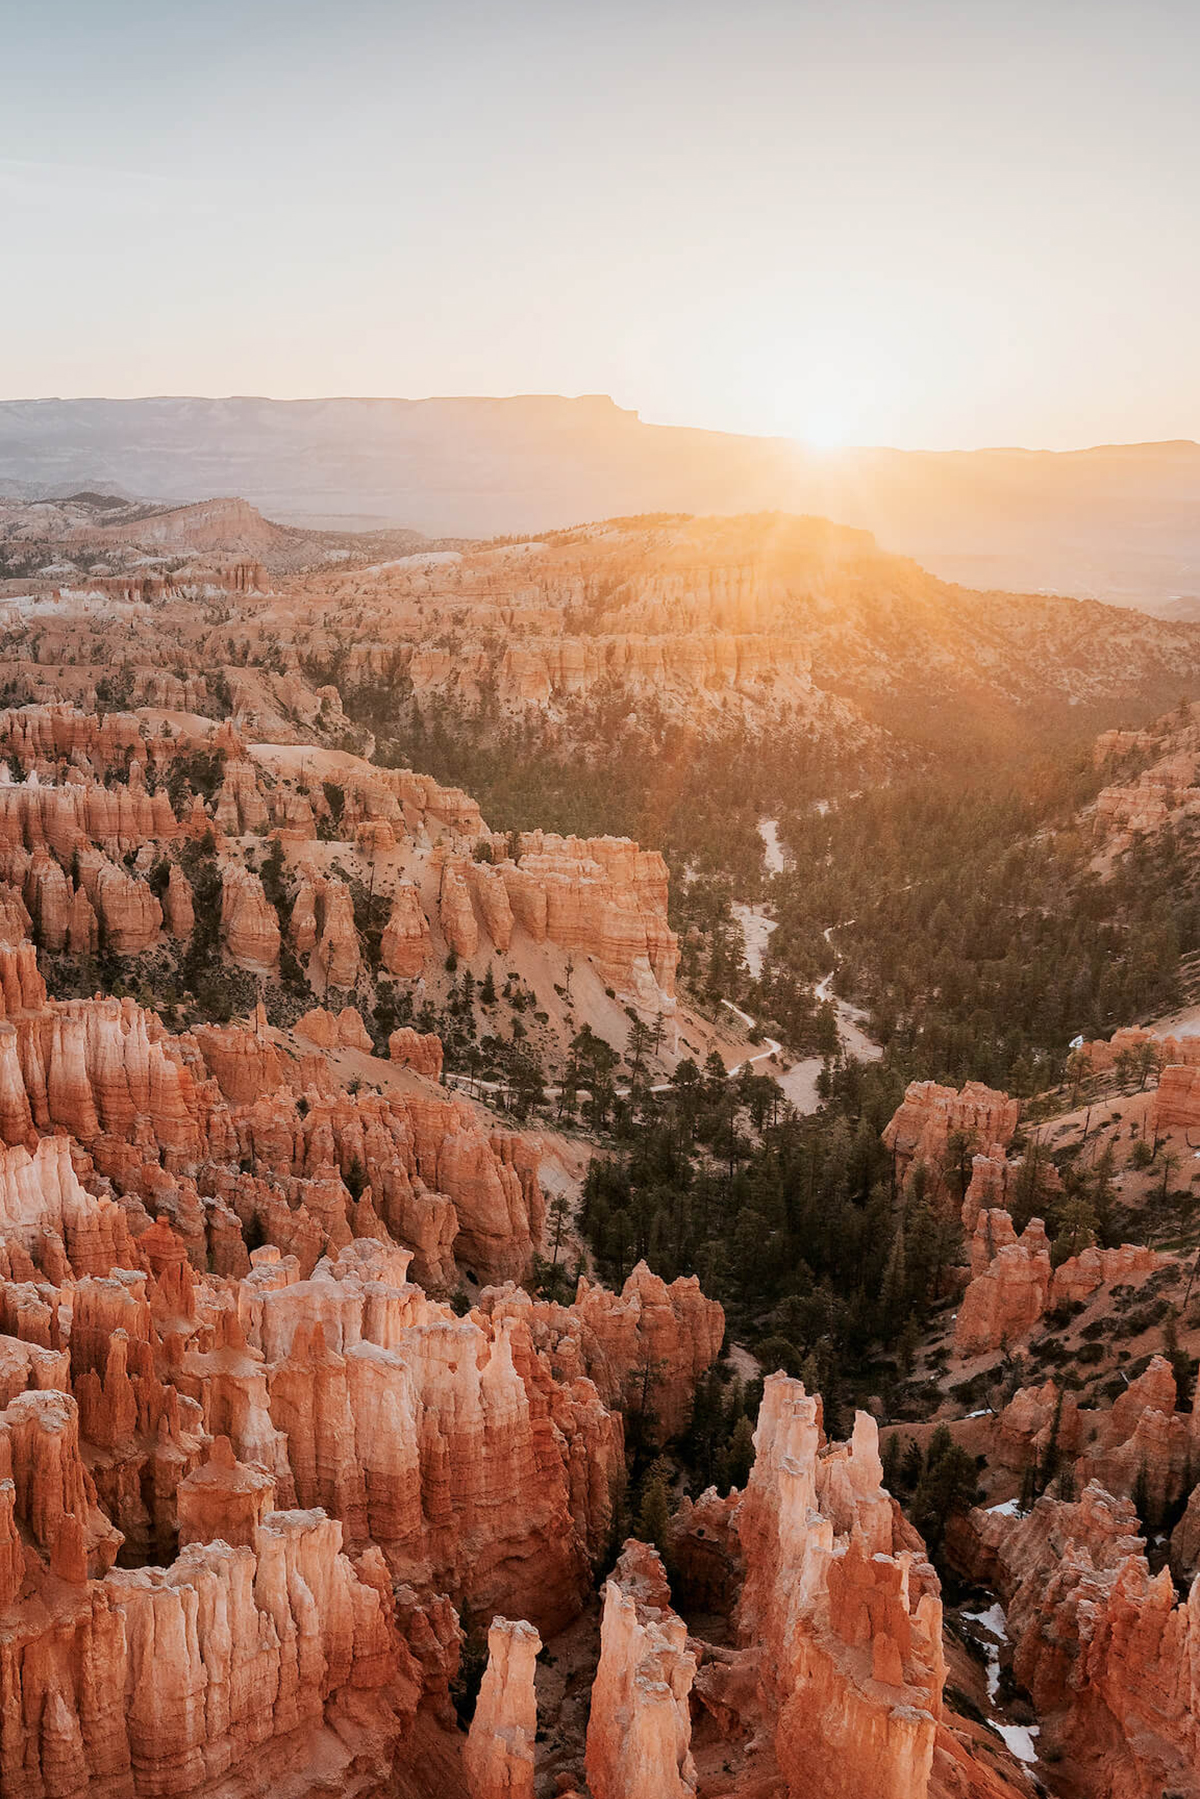 Photo of Renee Hehnel of golden hour in Bryce Canyon National Park